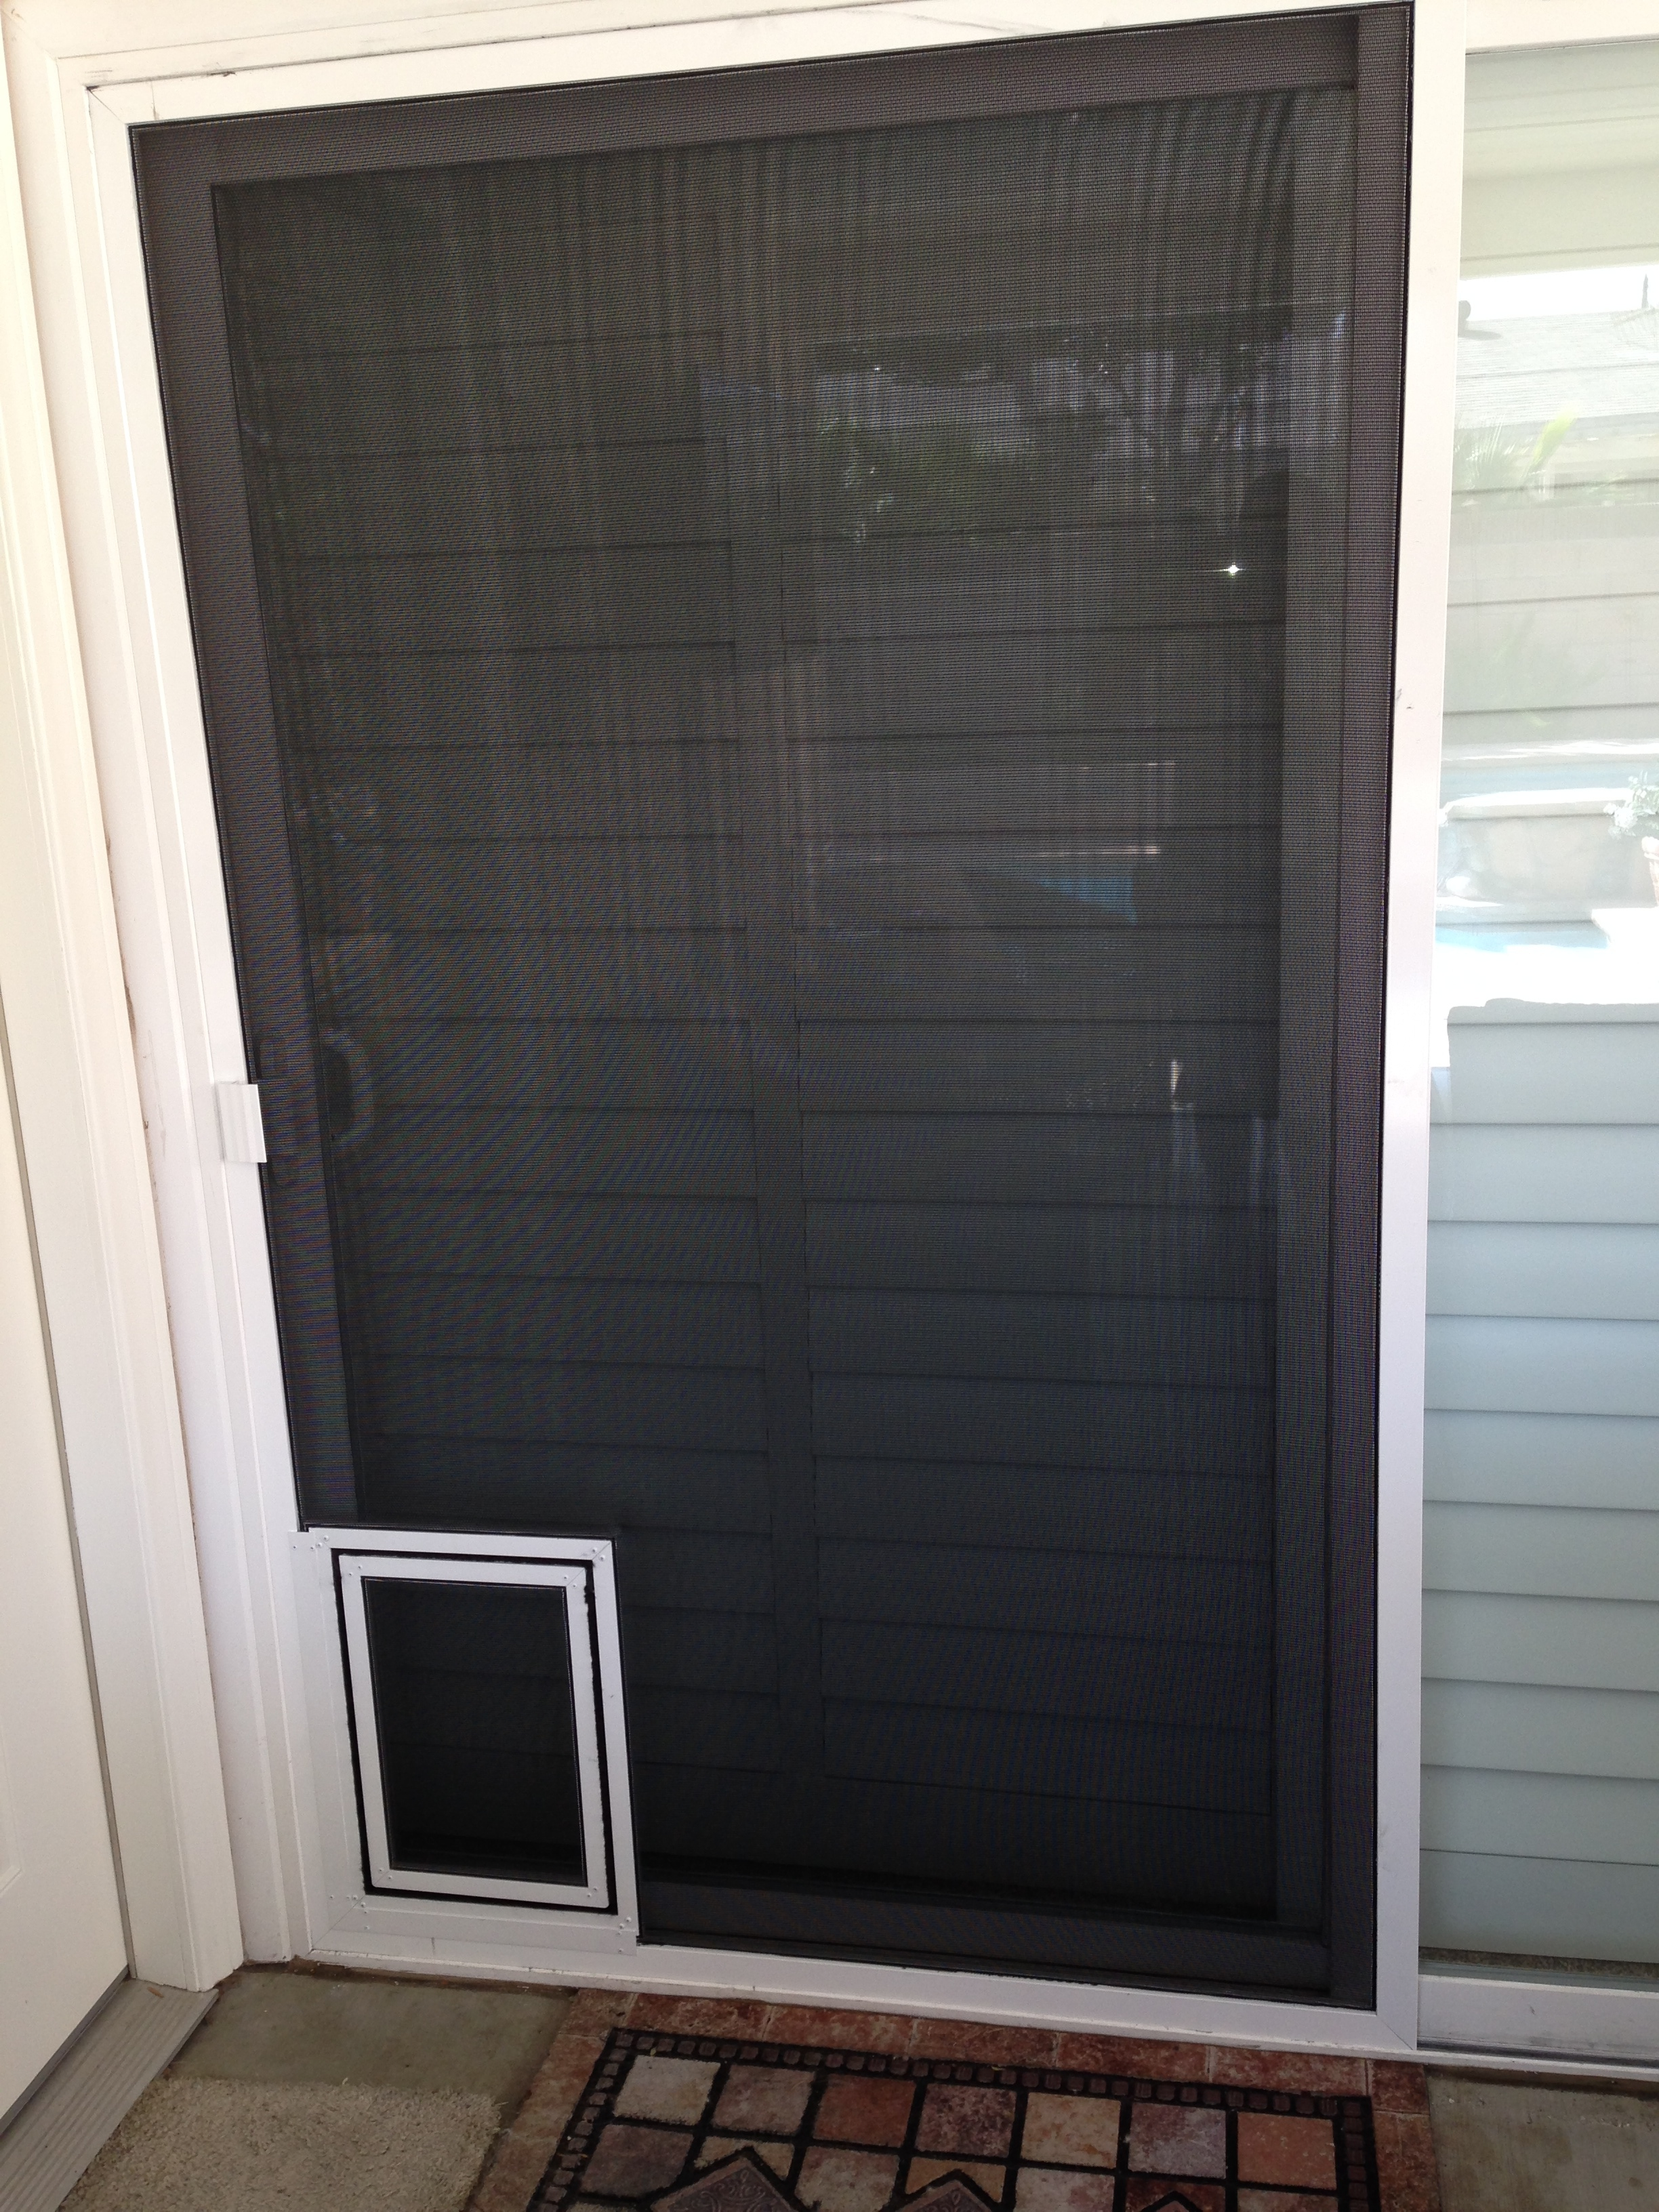 3264 #556A76 Slider White With Pet Door Already On save image Exterior Doors With Pet Door Built In 39172448